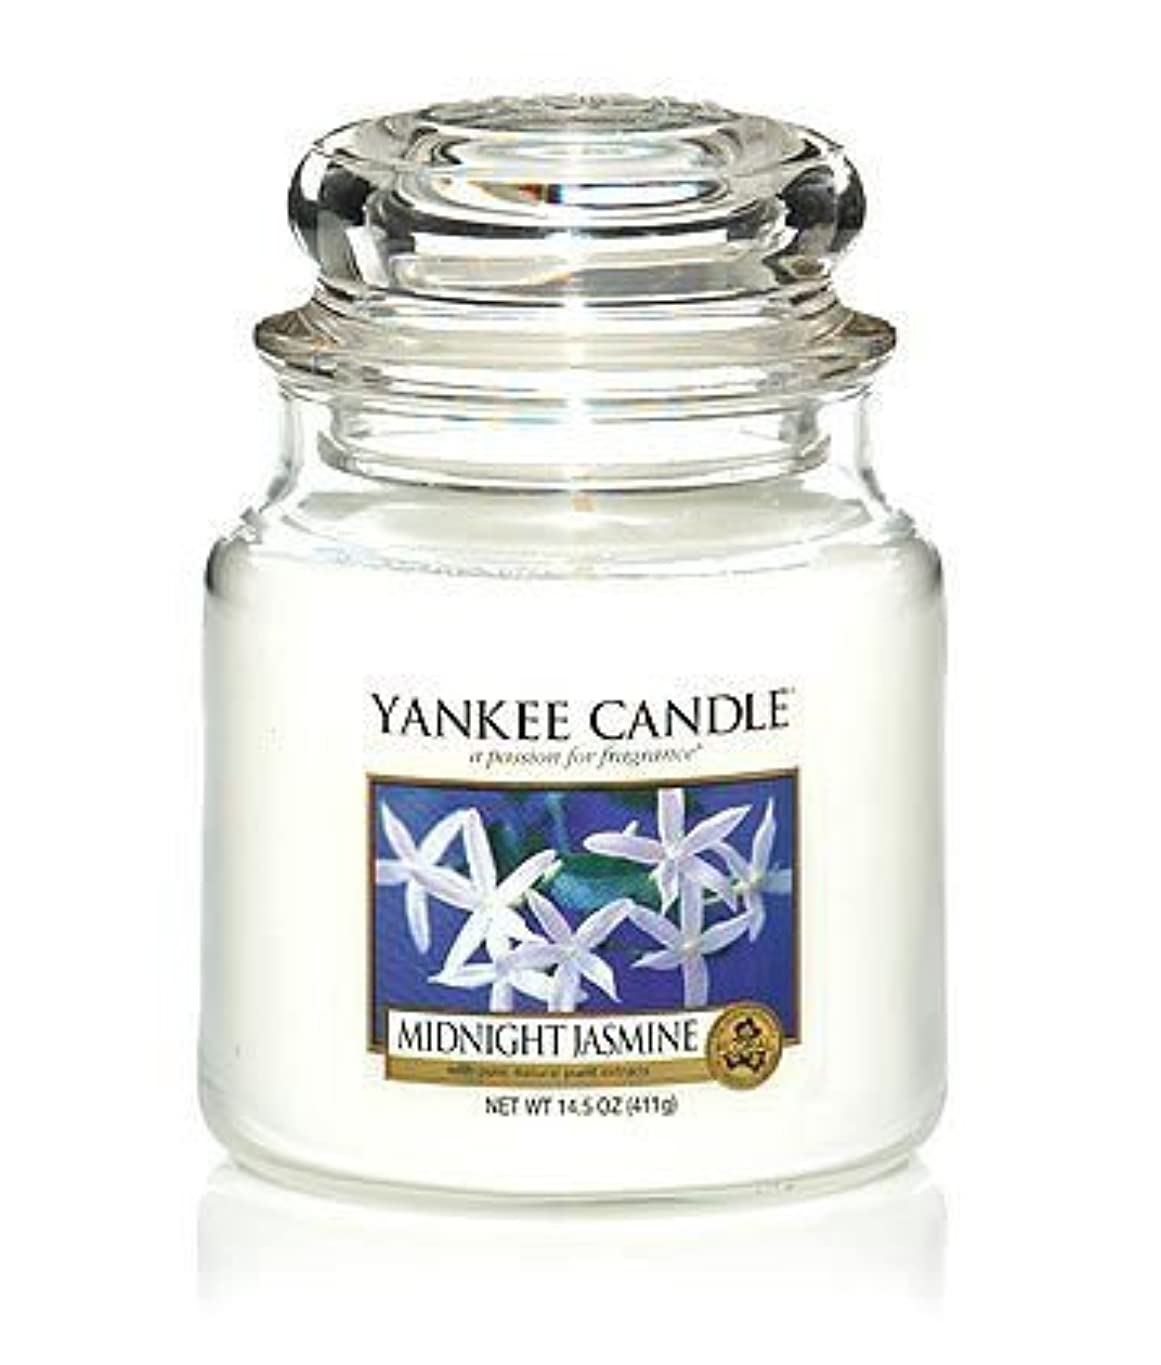 ゴールデンペインギリックダイアクリティカルYankee Candle Midnight Jasmine Medium Jar Candle, Floral Scent by Yankee Candle [並行輸入品]